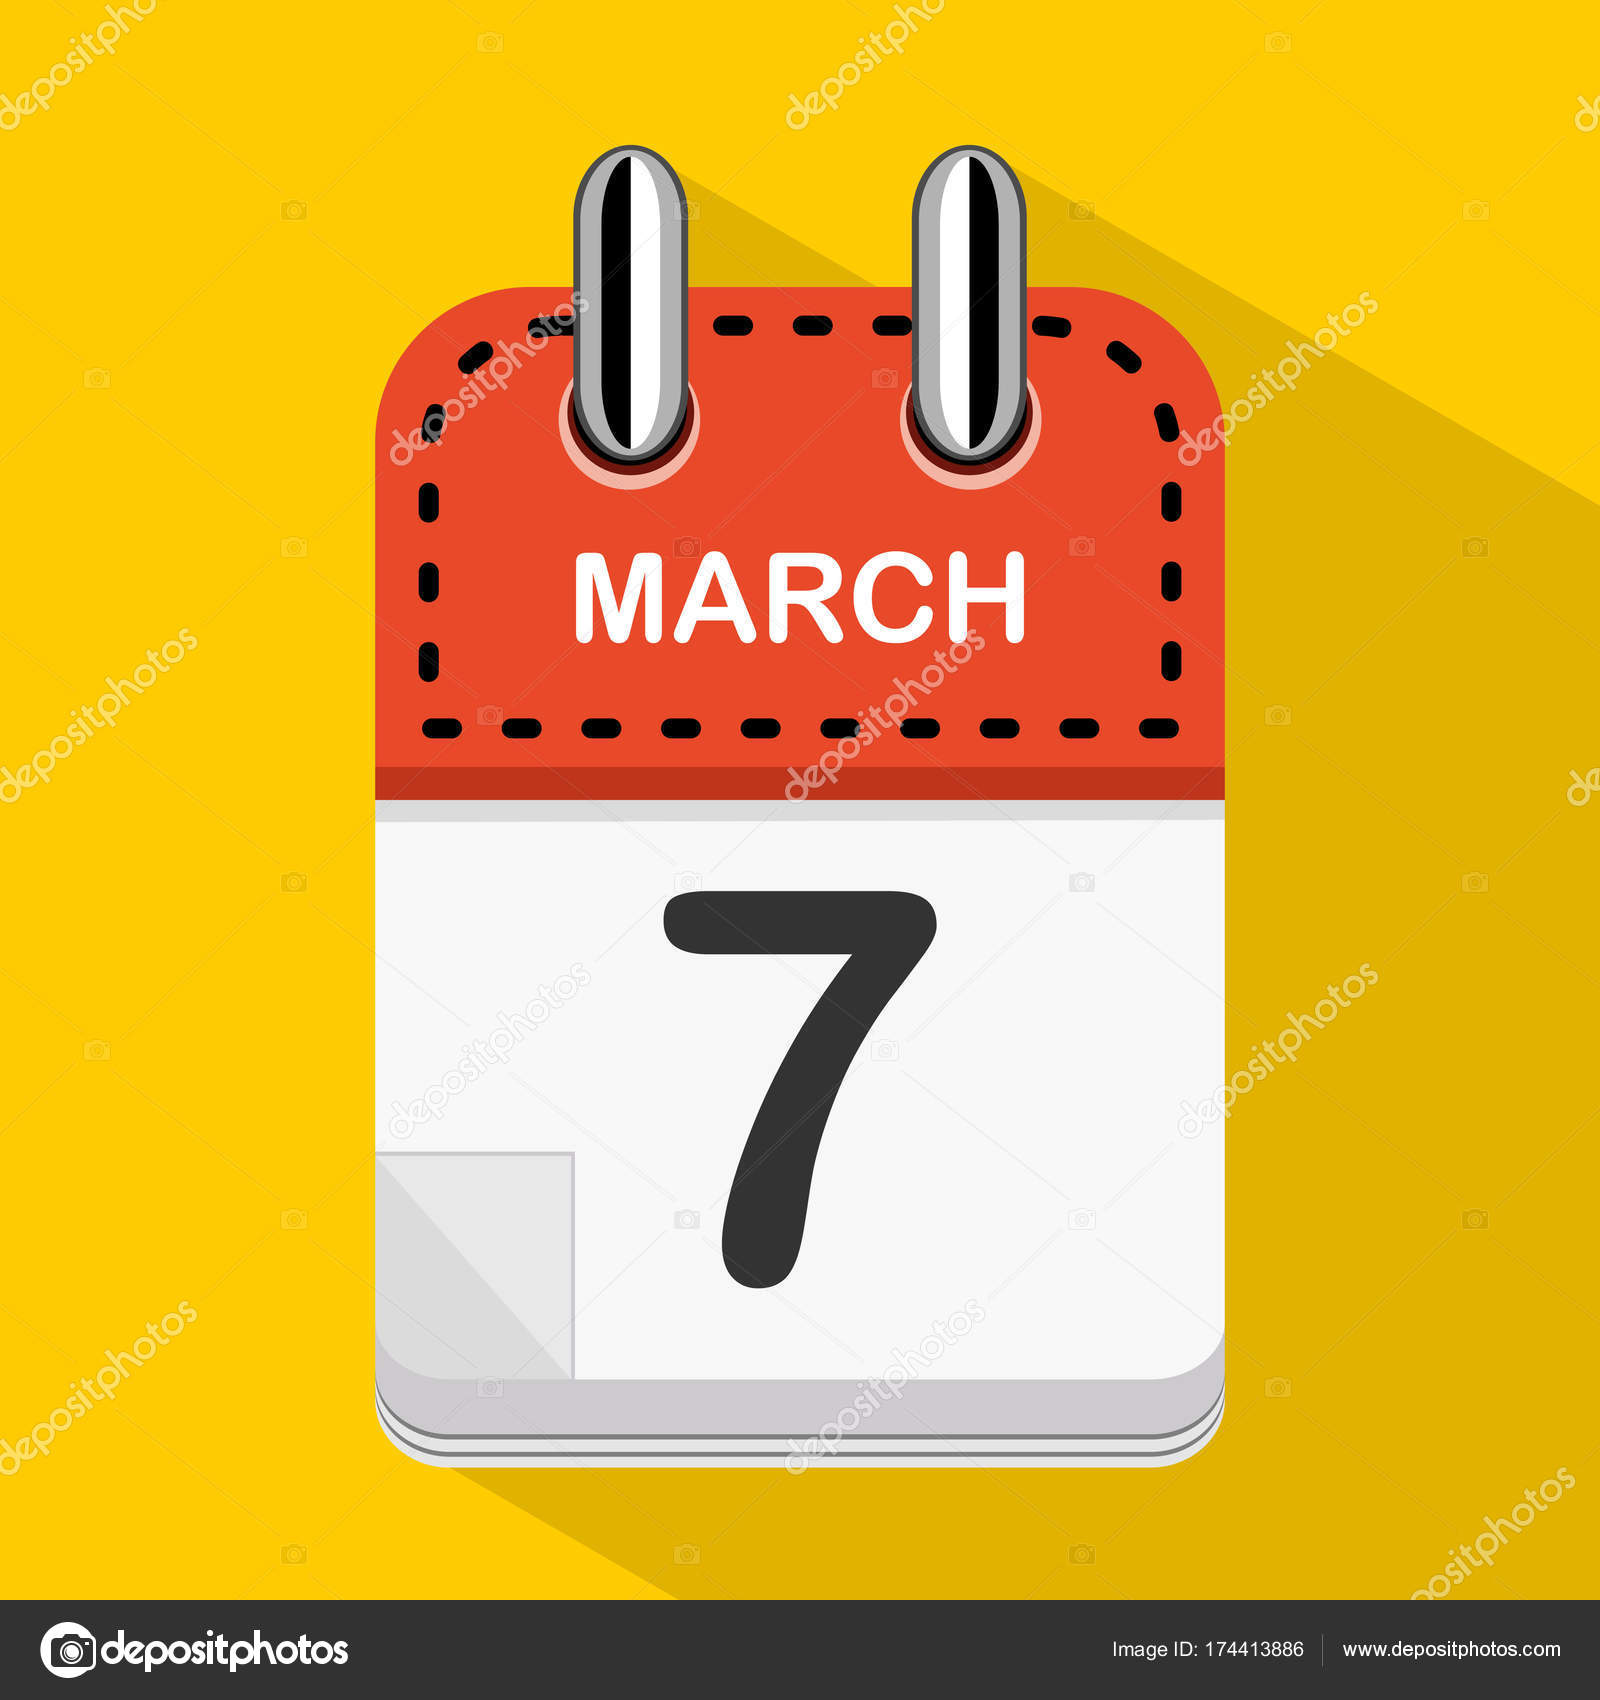 Daily Holiday Calendar.March Vector Flat Daily Calendar Icon Date Time Day Month Stock